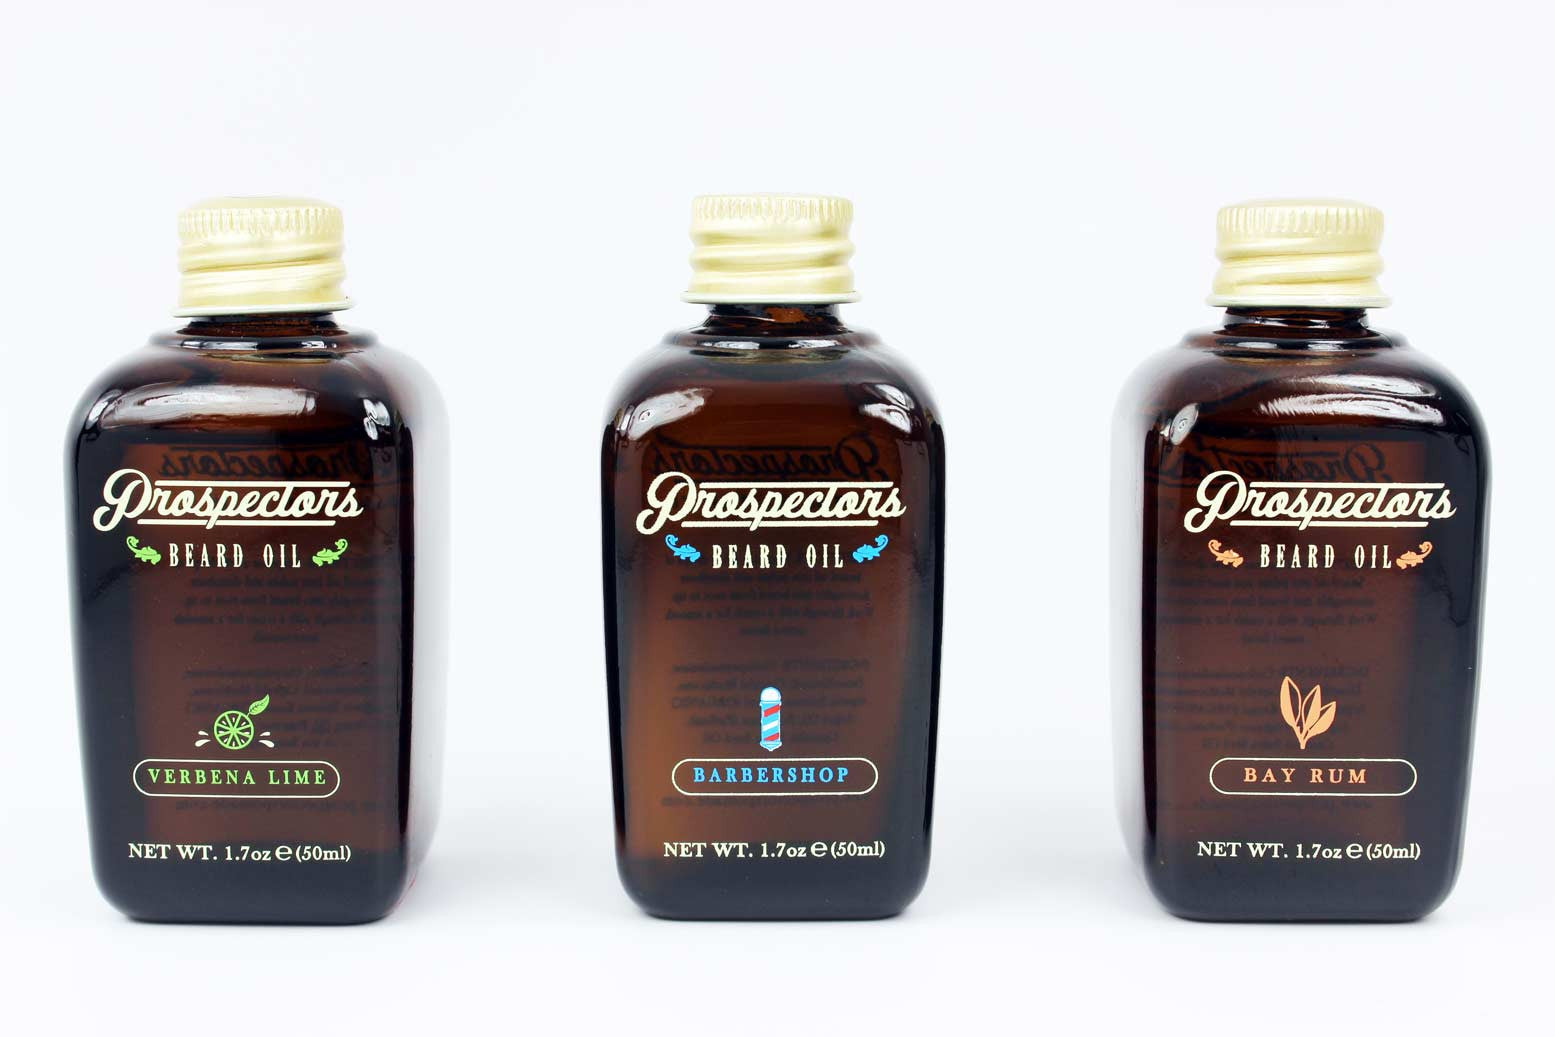 three beard oils from prospectors pomade in three scents